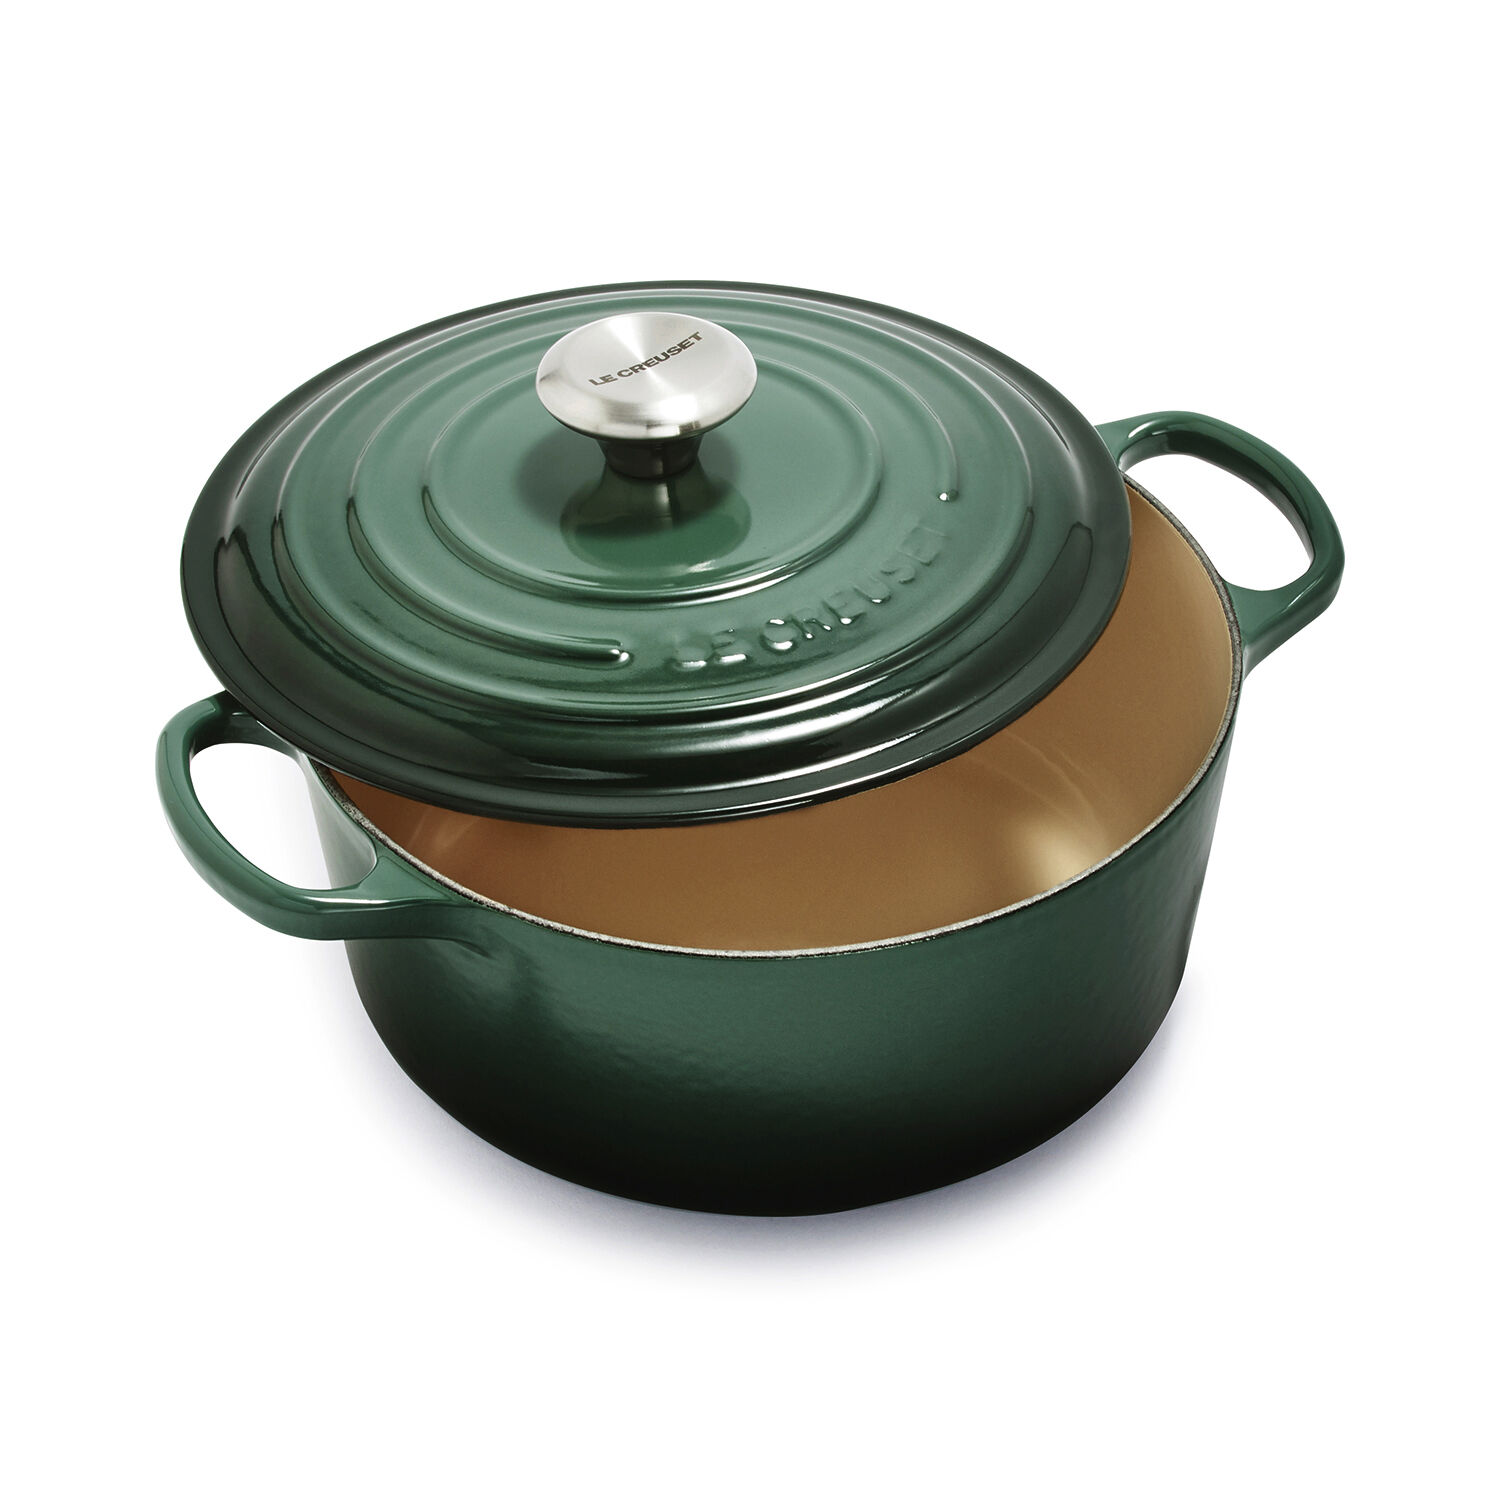 Storage Bag for Small 4 Litre Dutch Oven Cooking Pot